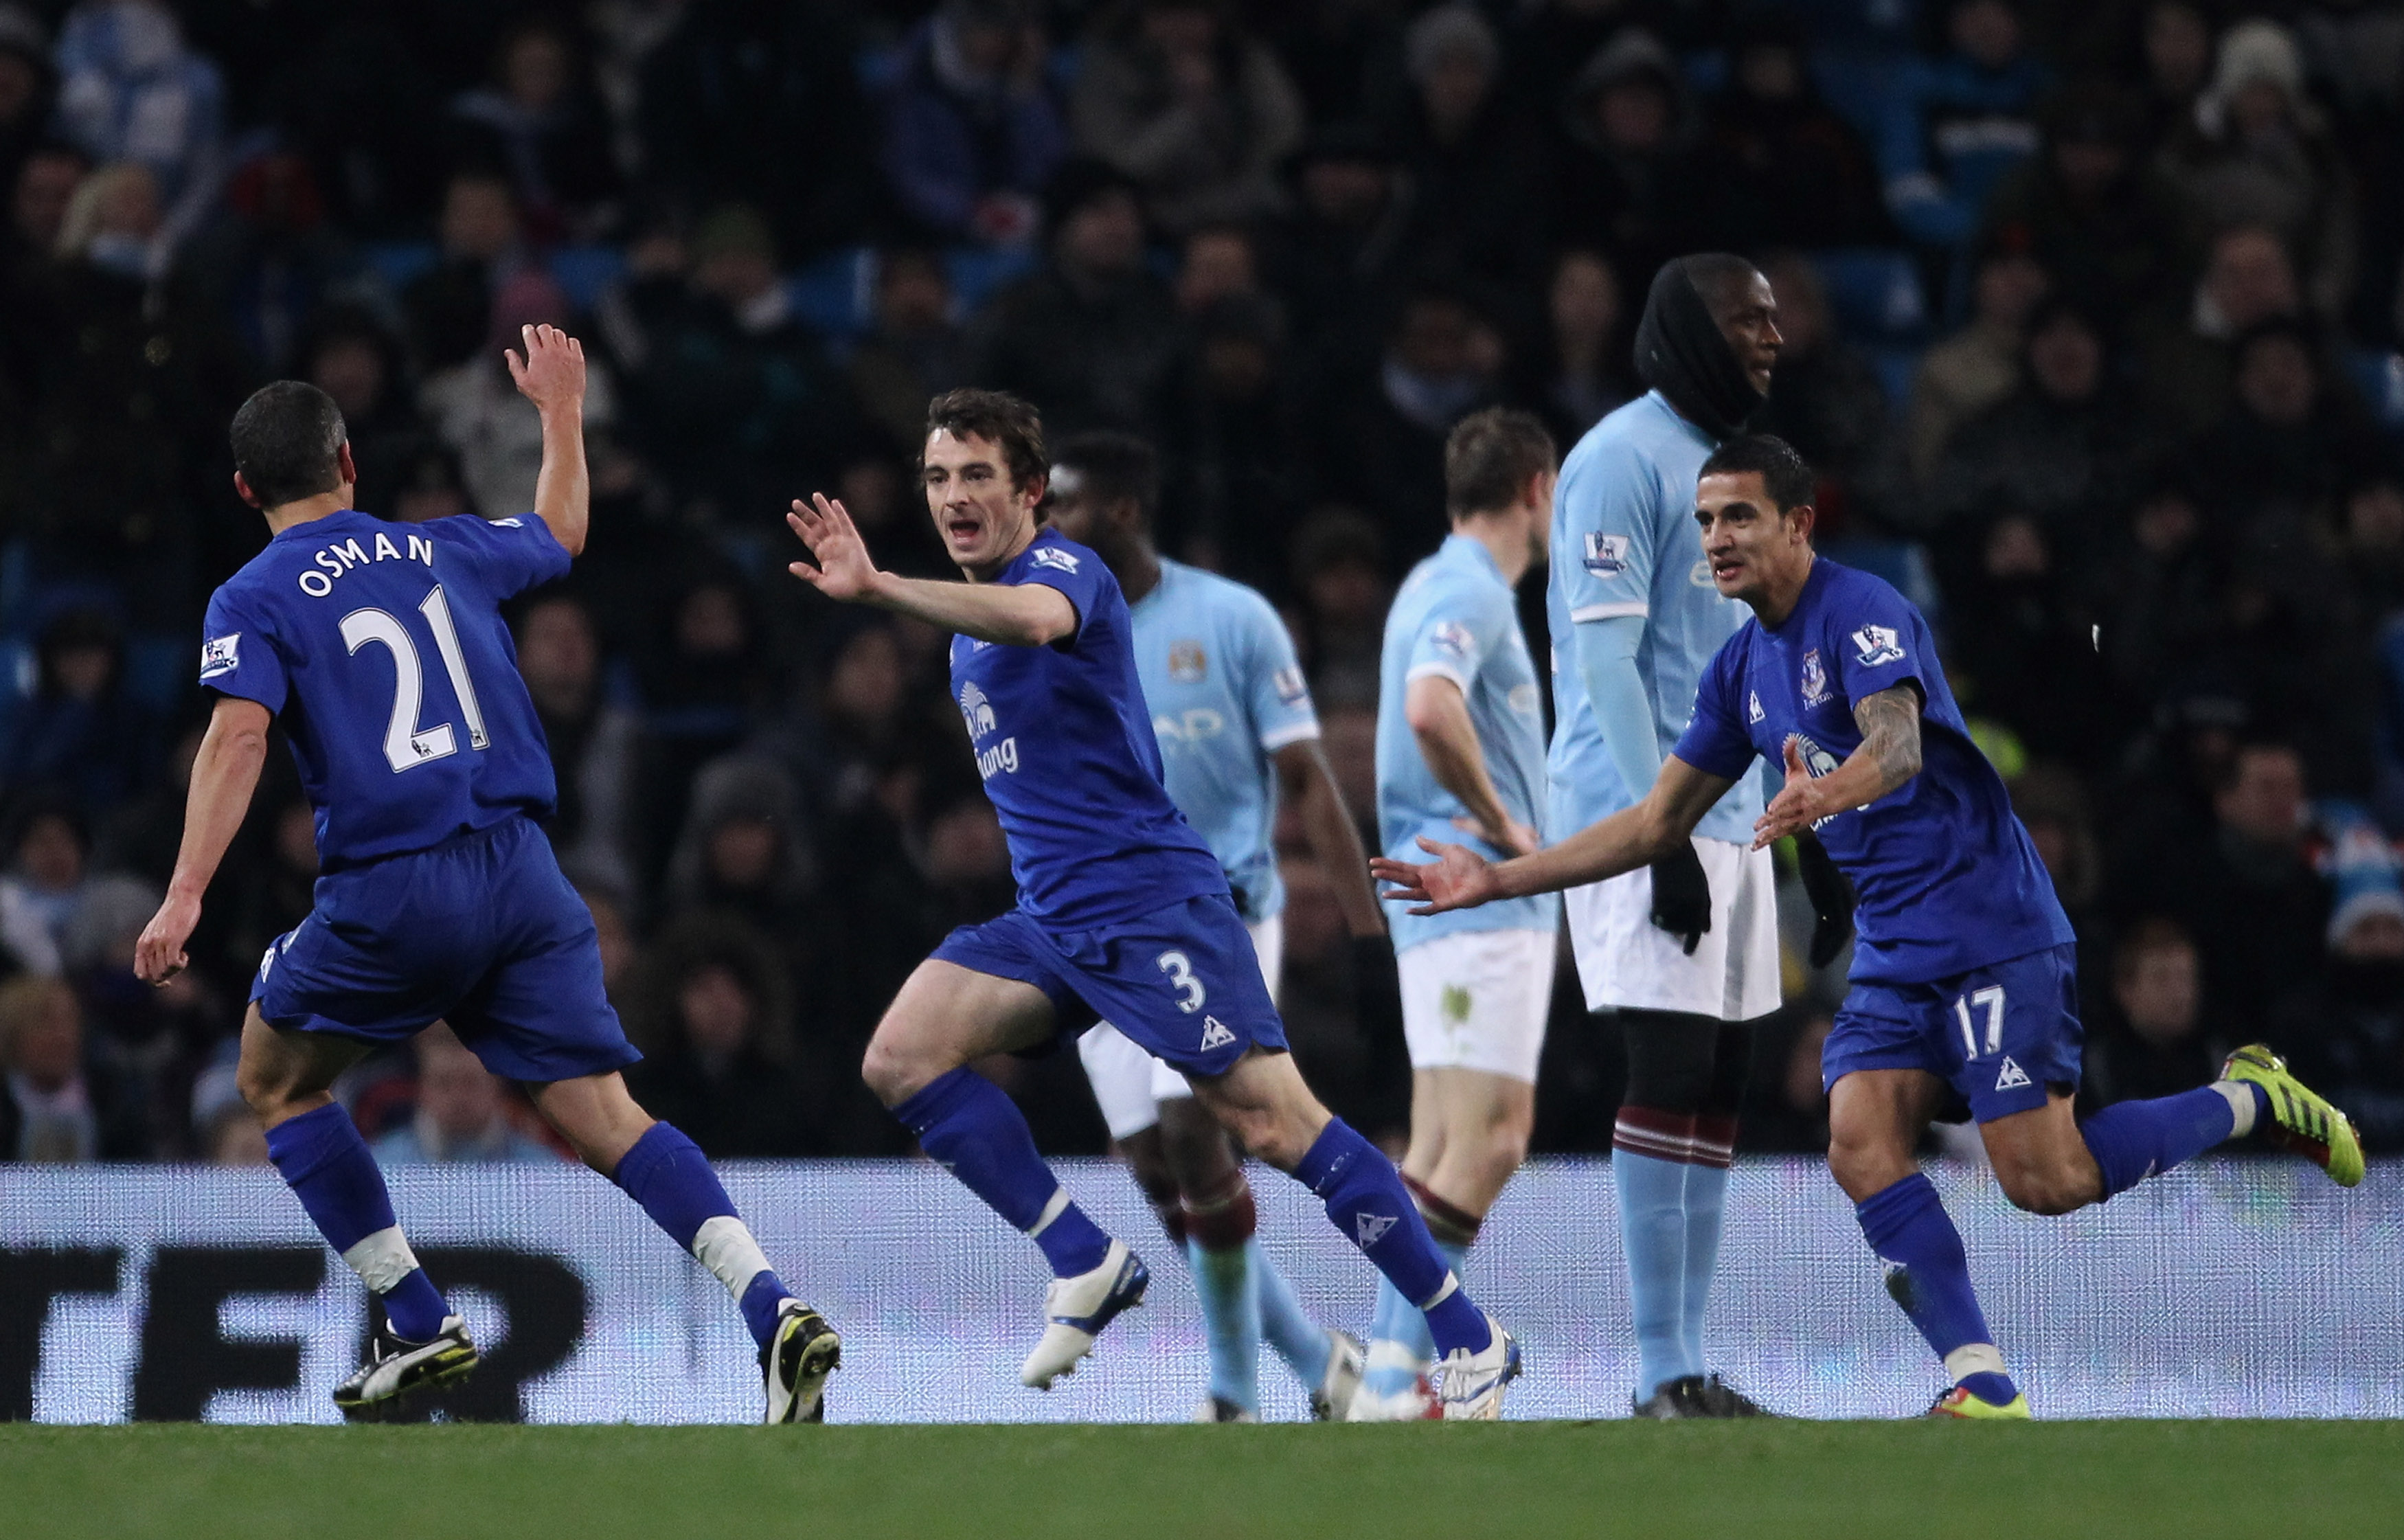 MANCHESTER, ENGLAND - DECEMBER 20:  Leighton Baines of Everton celebrates with team mates after scoring the second goal during the Barclays Premier League match between Manchester City and Everton at City of Manchester Stadium on December 20, 2010 in Manc